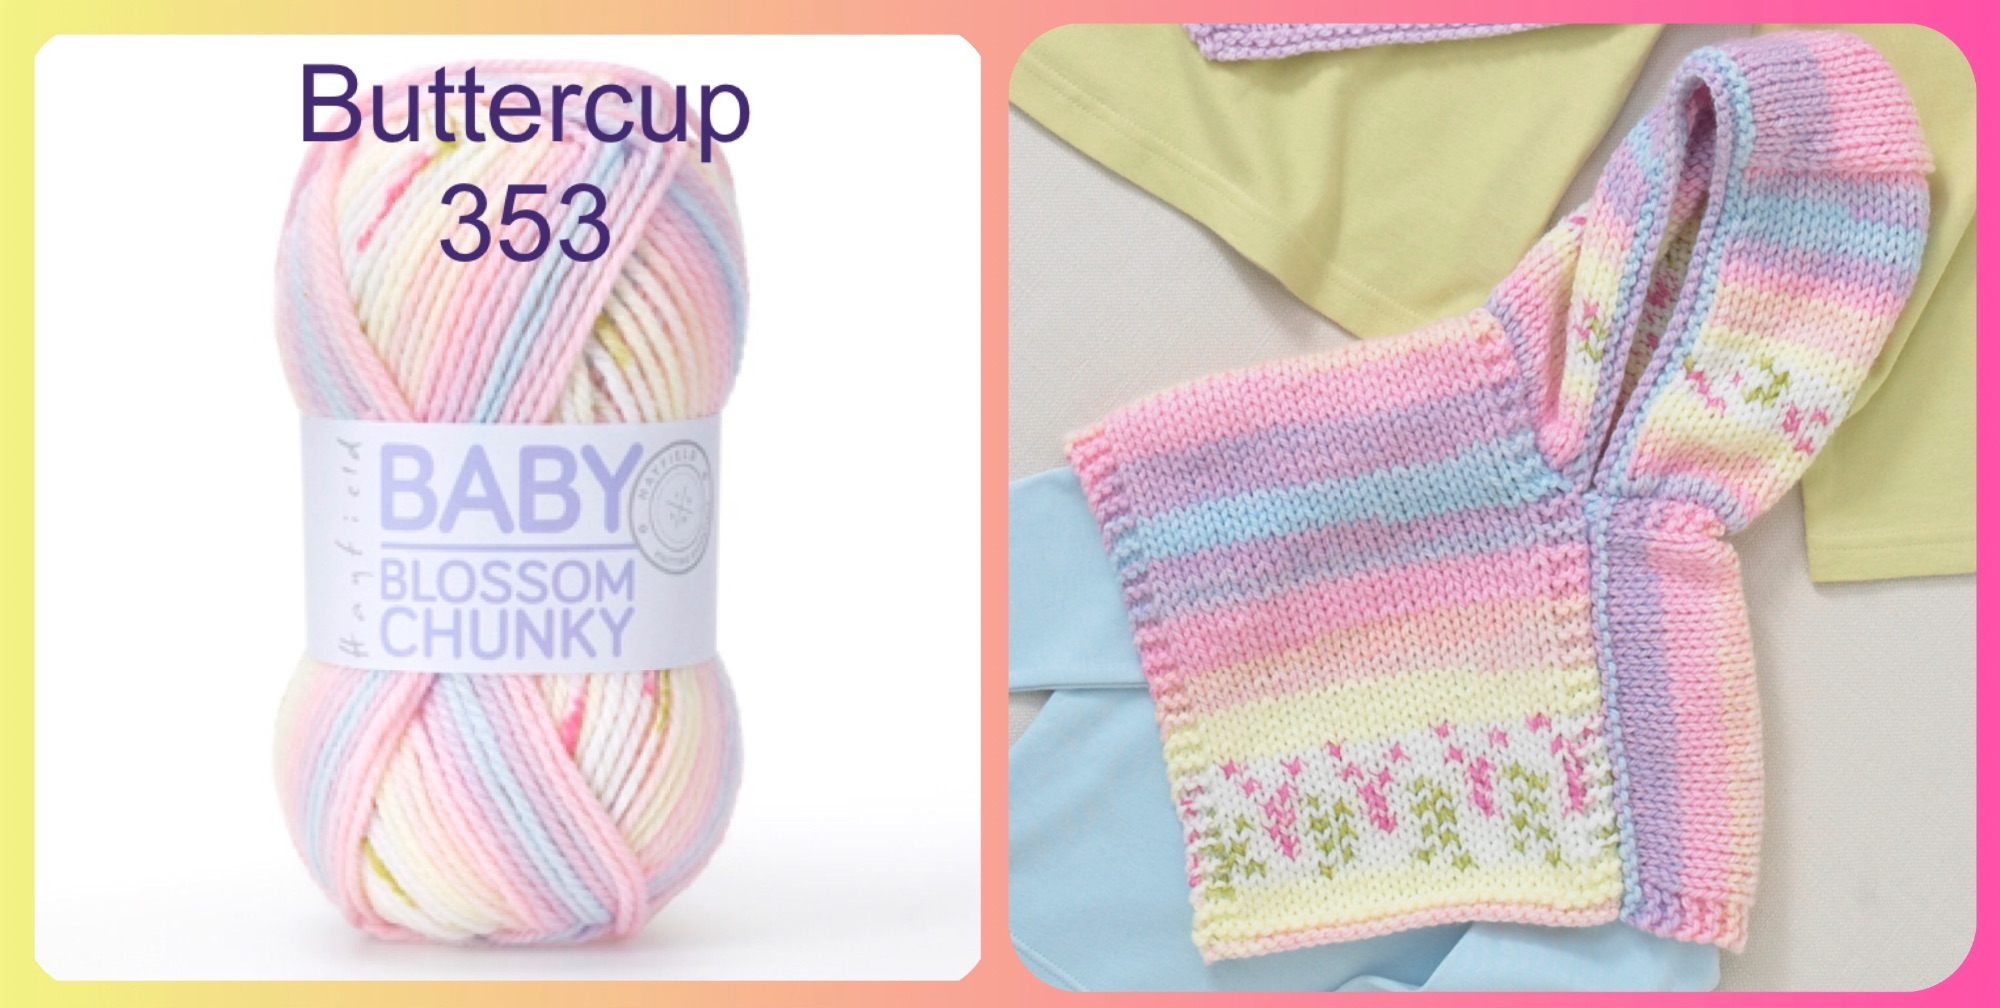 Hayfield baby blossom chunky yarn buttercup colour and knitting patterns